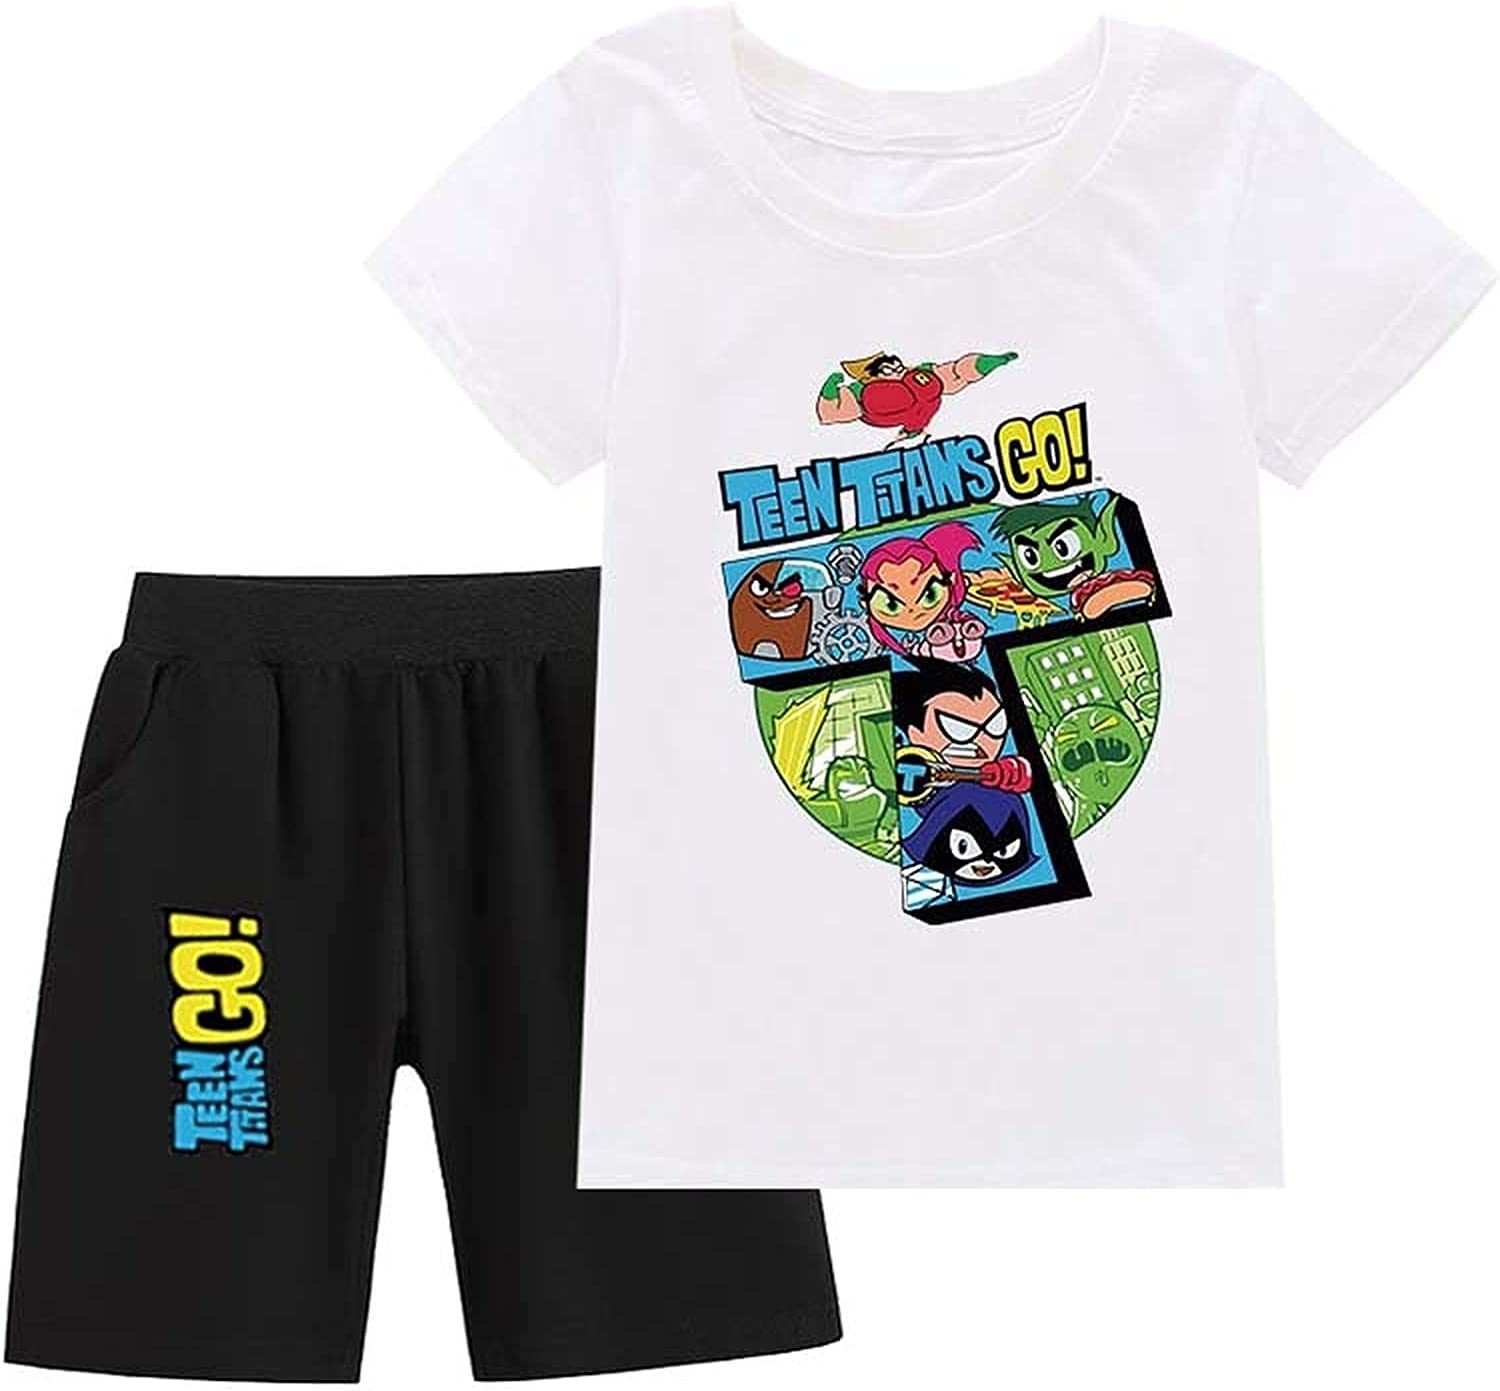 Teen Titans Go! Boys and Girls Clothes Cotton Short-Sleeved T-Shirts and Shorts Summer Clothing Suits Shorts Suits (White,110)